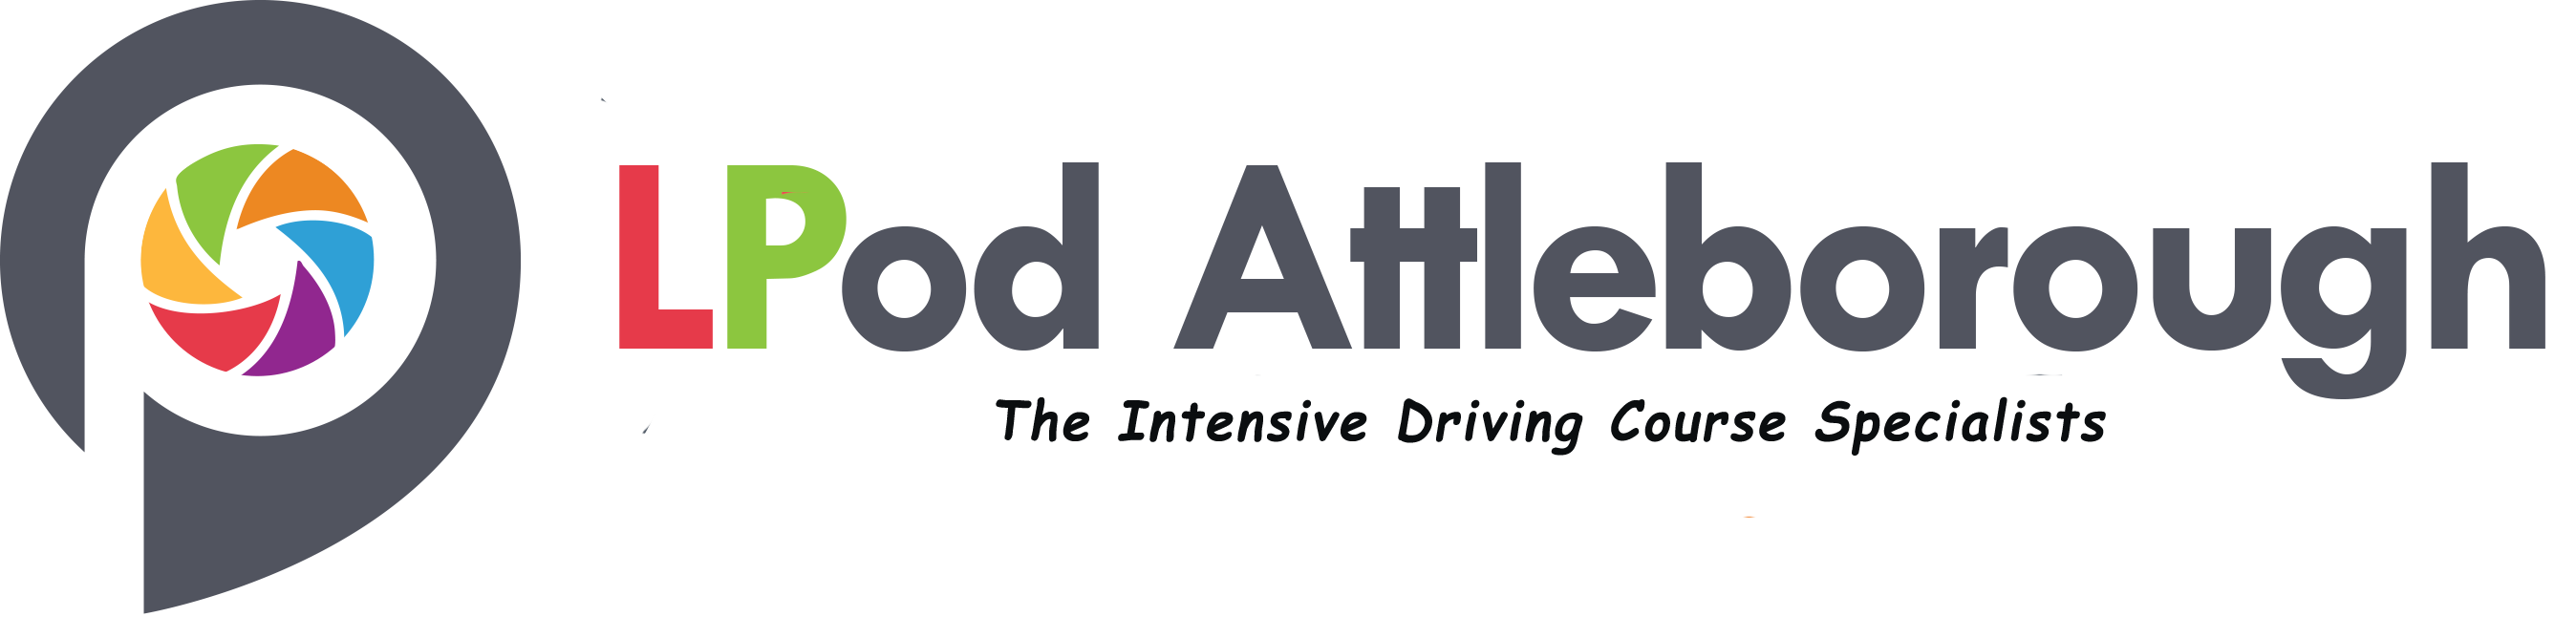 intensive driving courses Attleborough